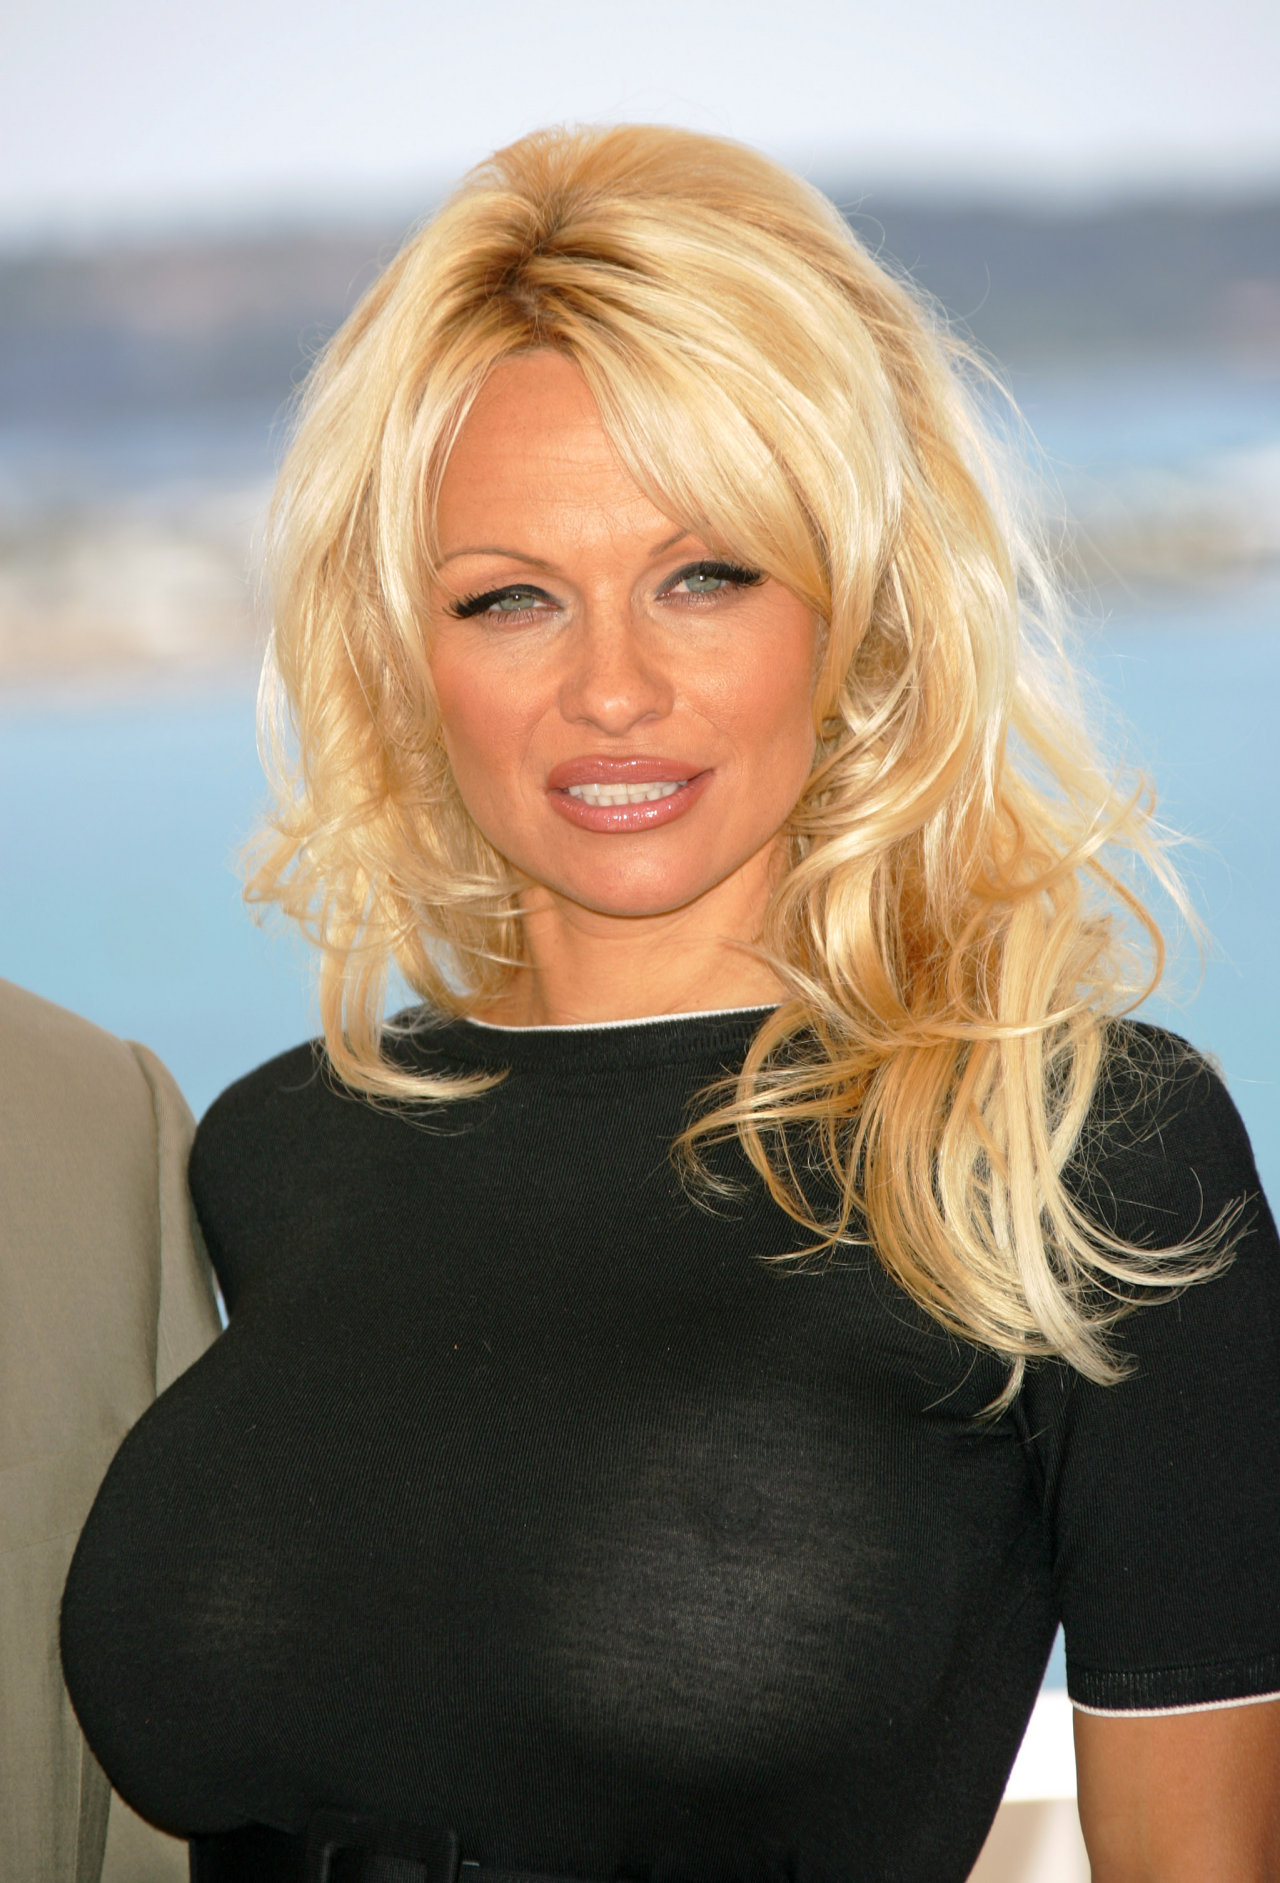 Pamela Anderson/Image gallery | Pro Wrestling | Fandom powered by ...